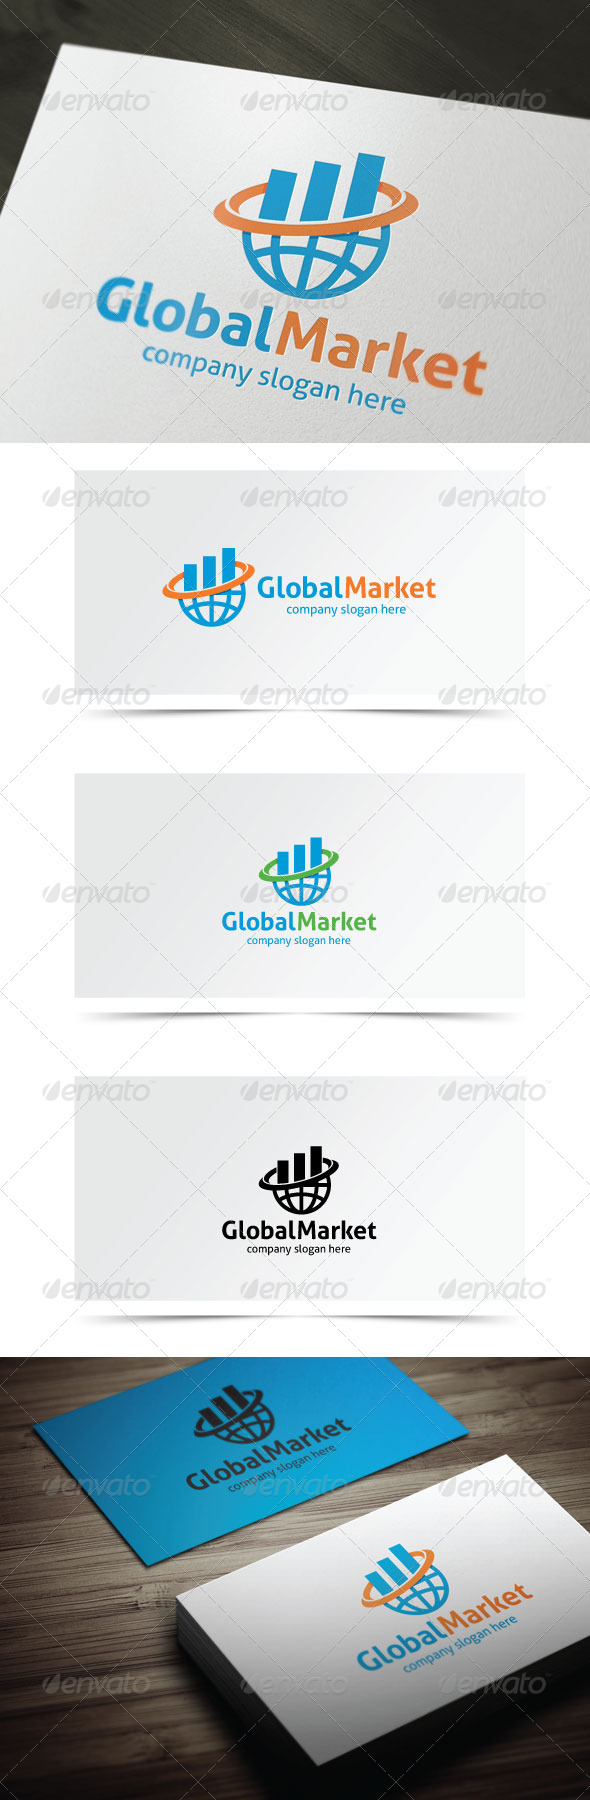 GraphicRiver Global Market 7263318